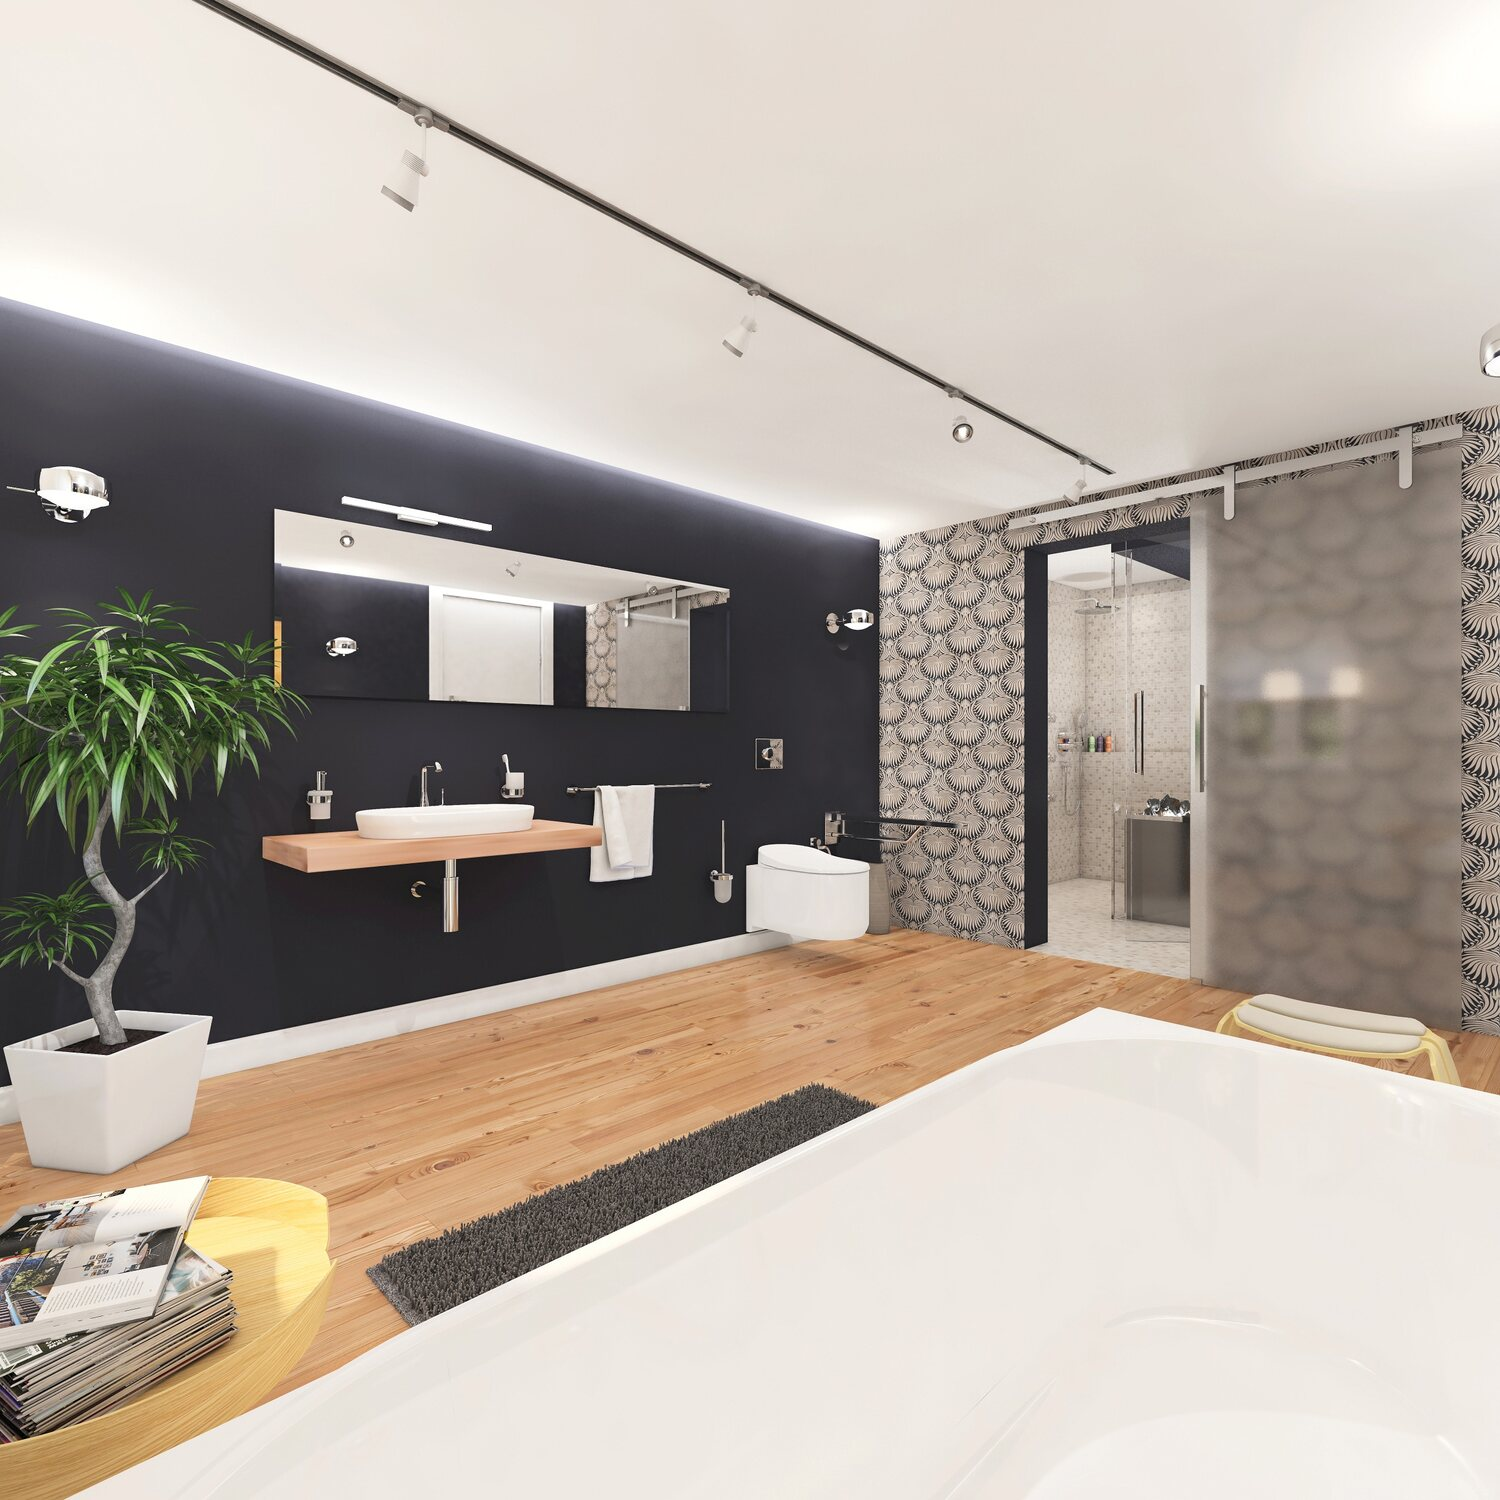 grohe sensia arena dusch wc kaufen bei obi. Black Bedroom Furniture Sets. Home Design Ideas